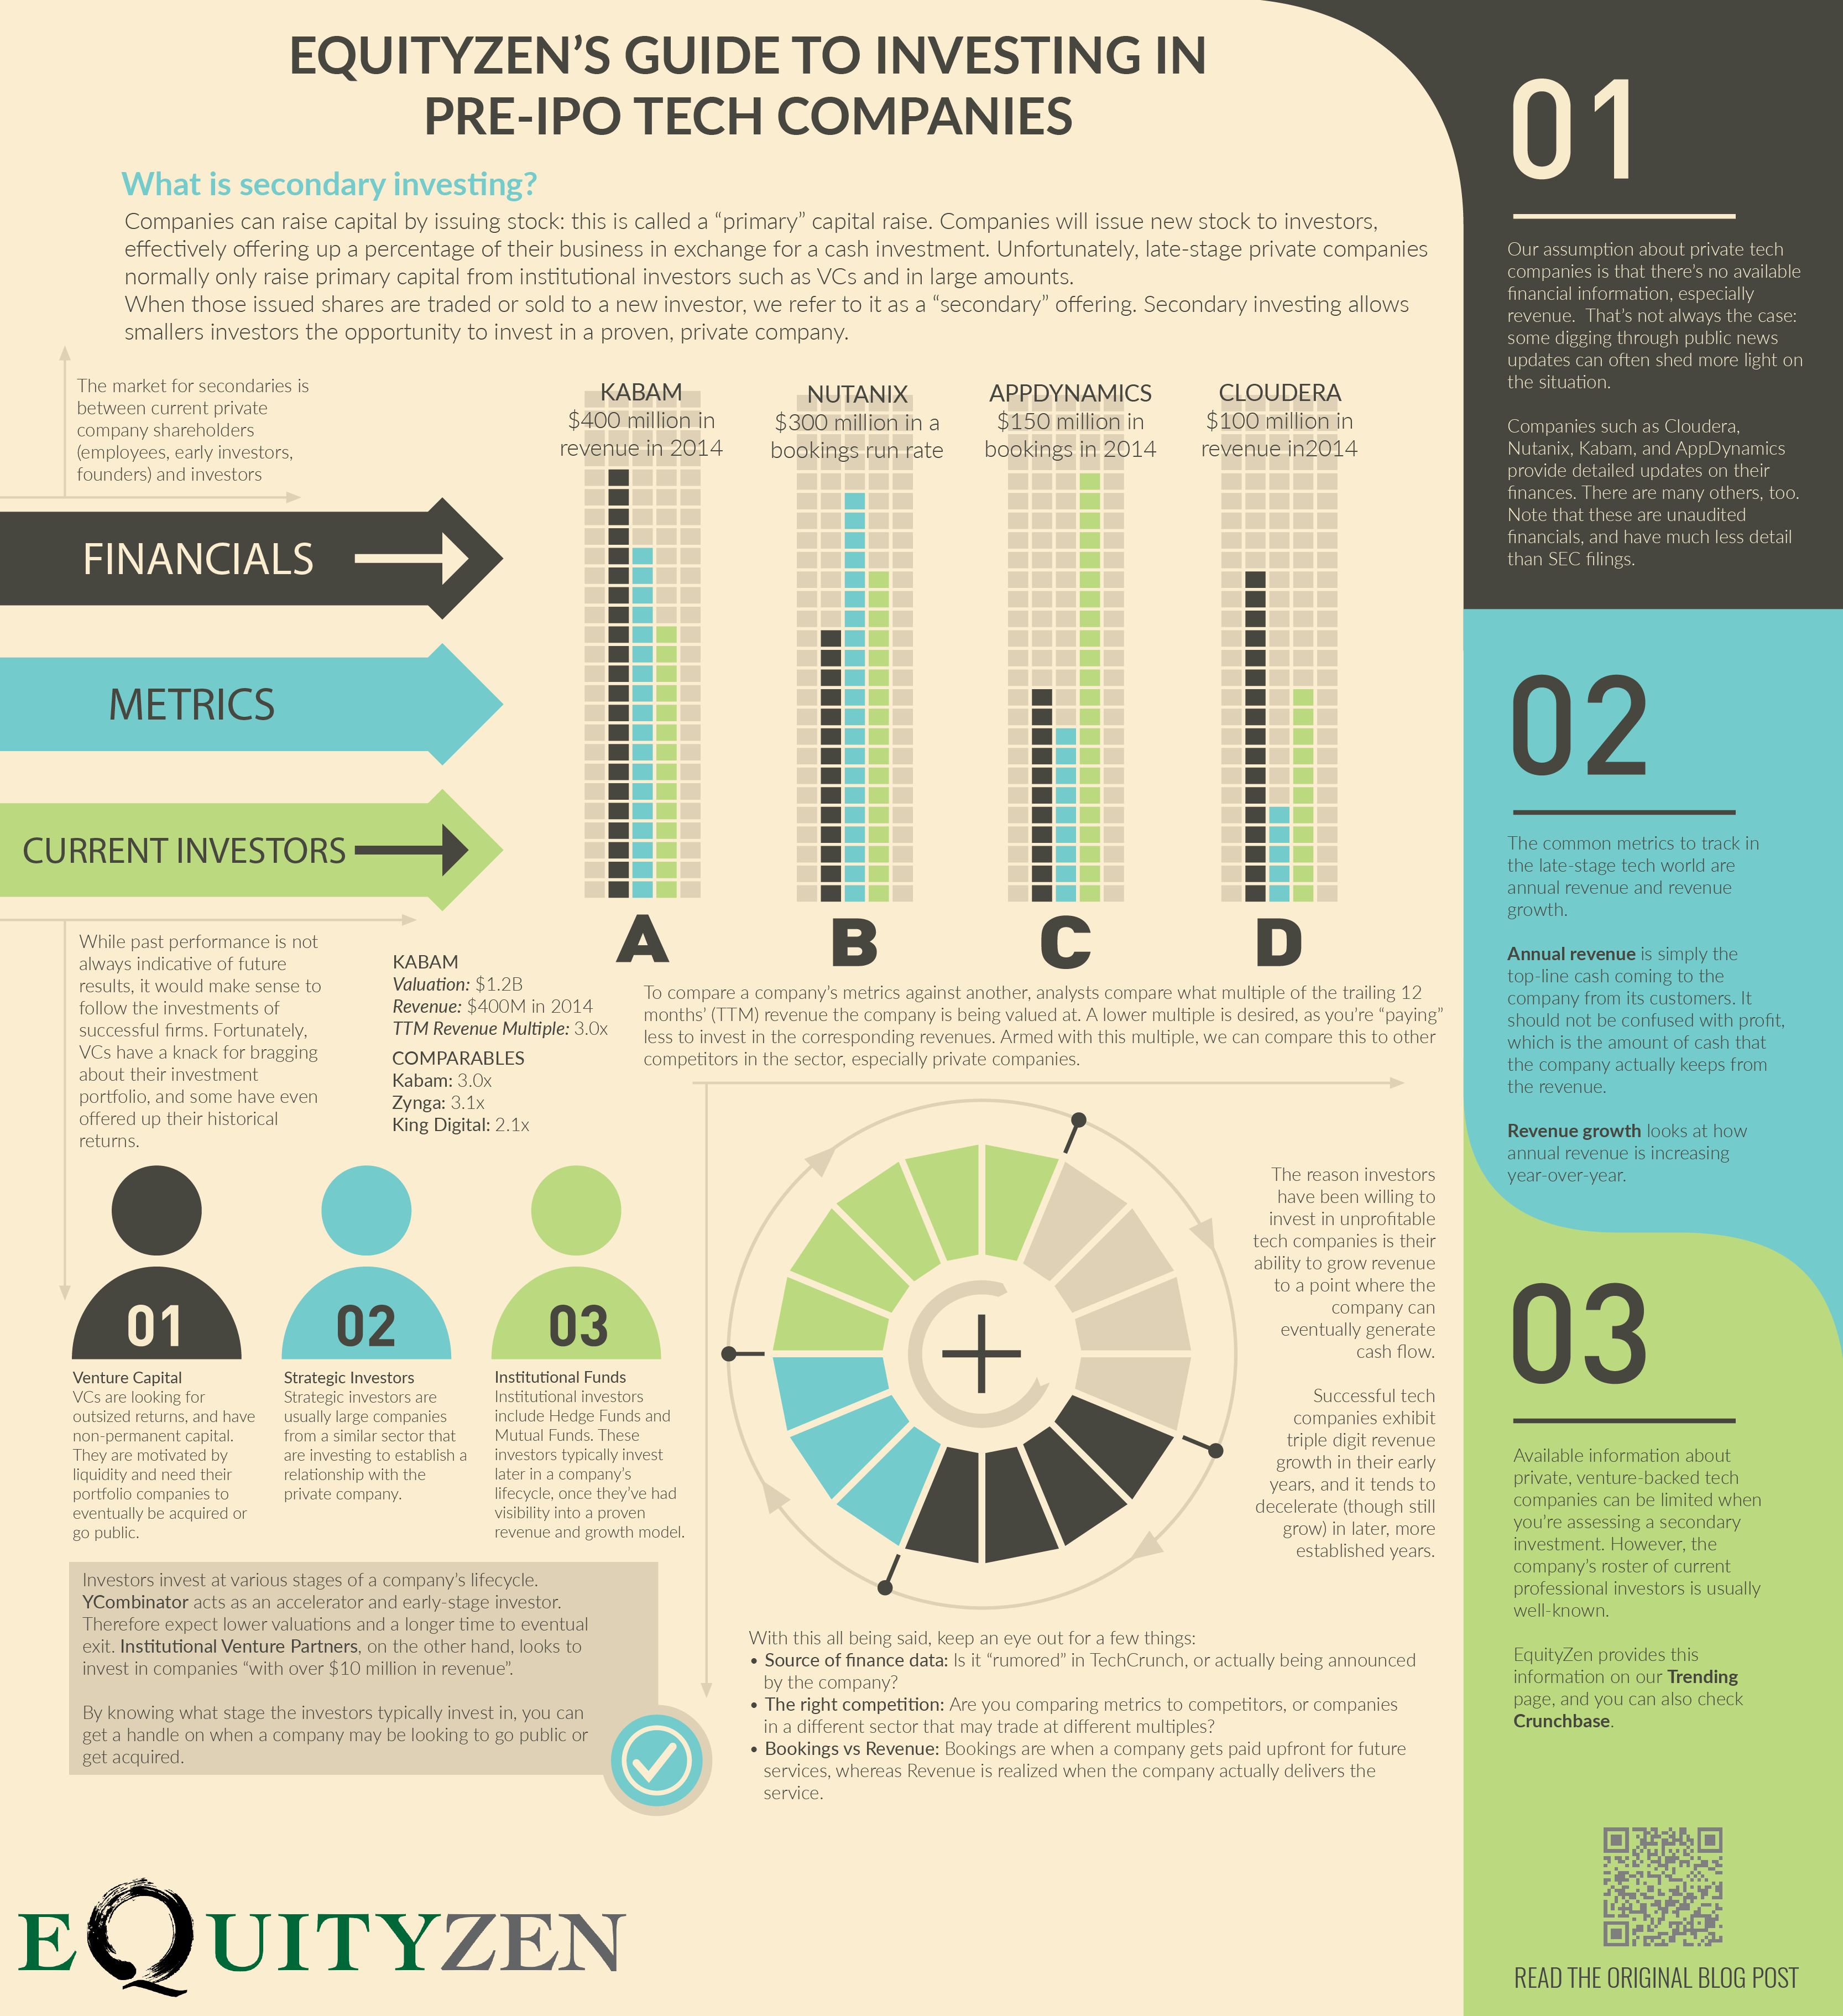 EquityZen's Guide to Investing in Pre-IPO Tech Companies